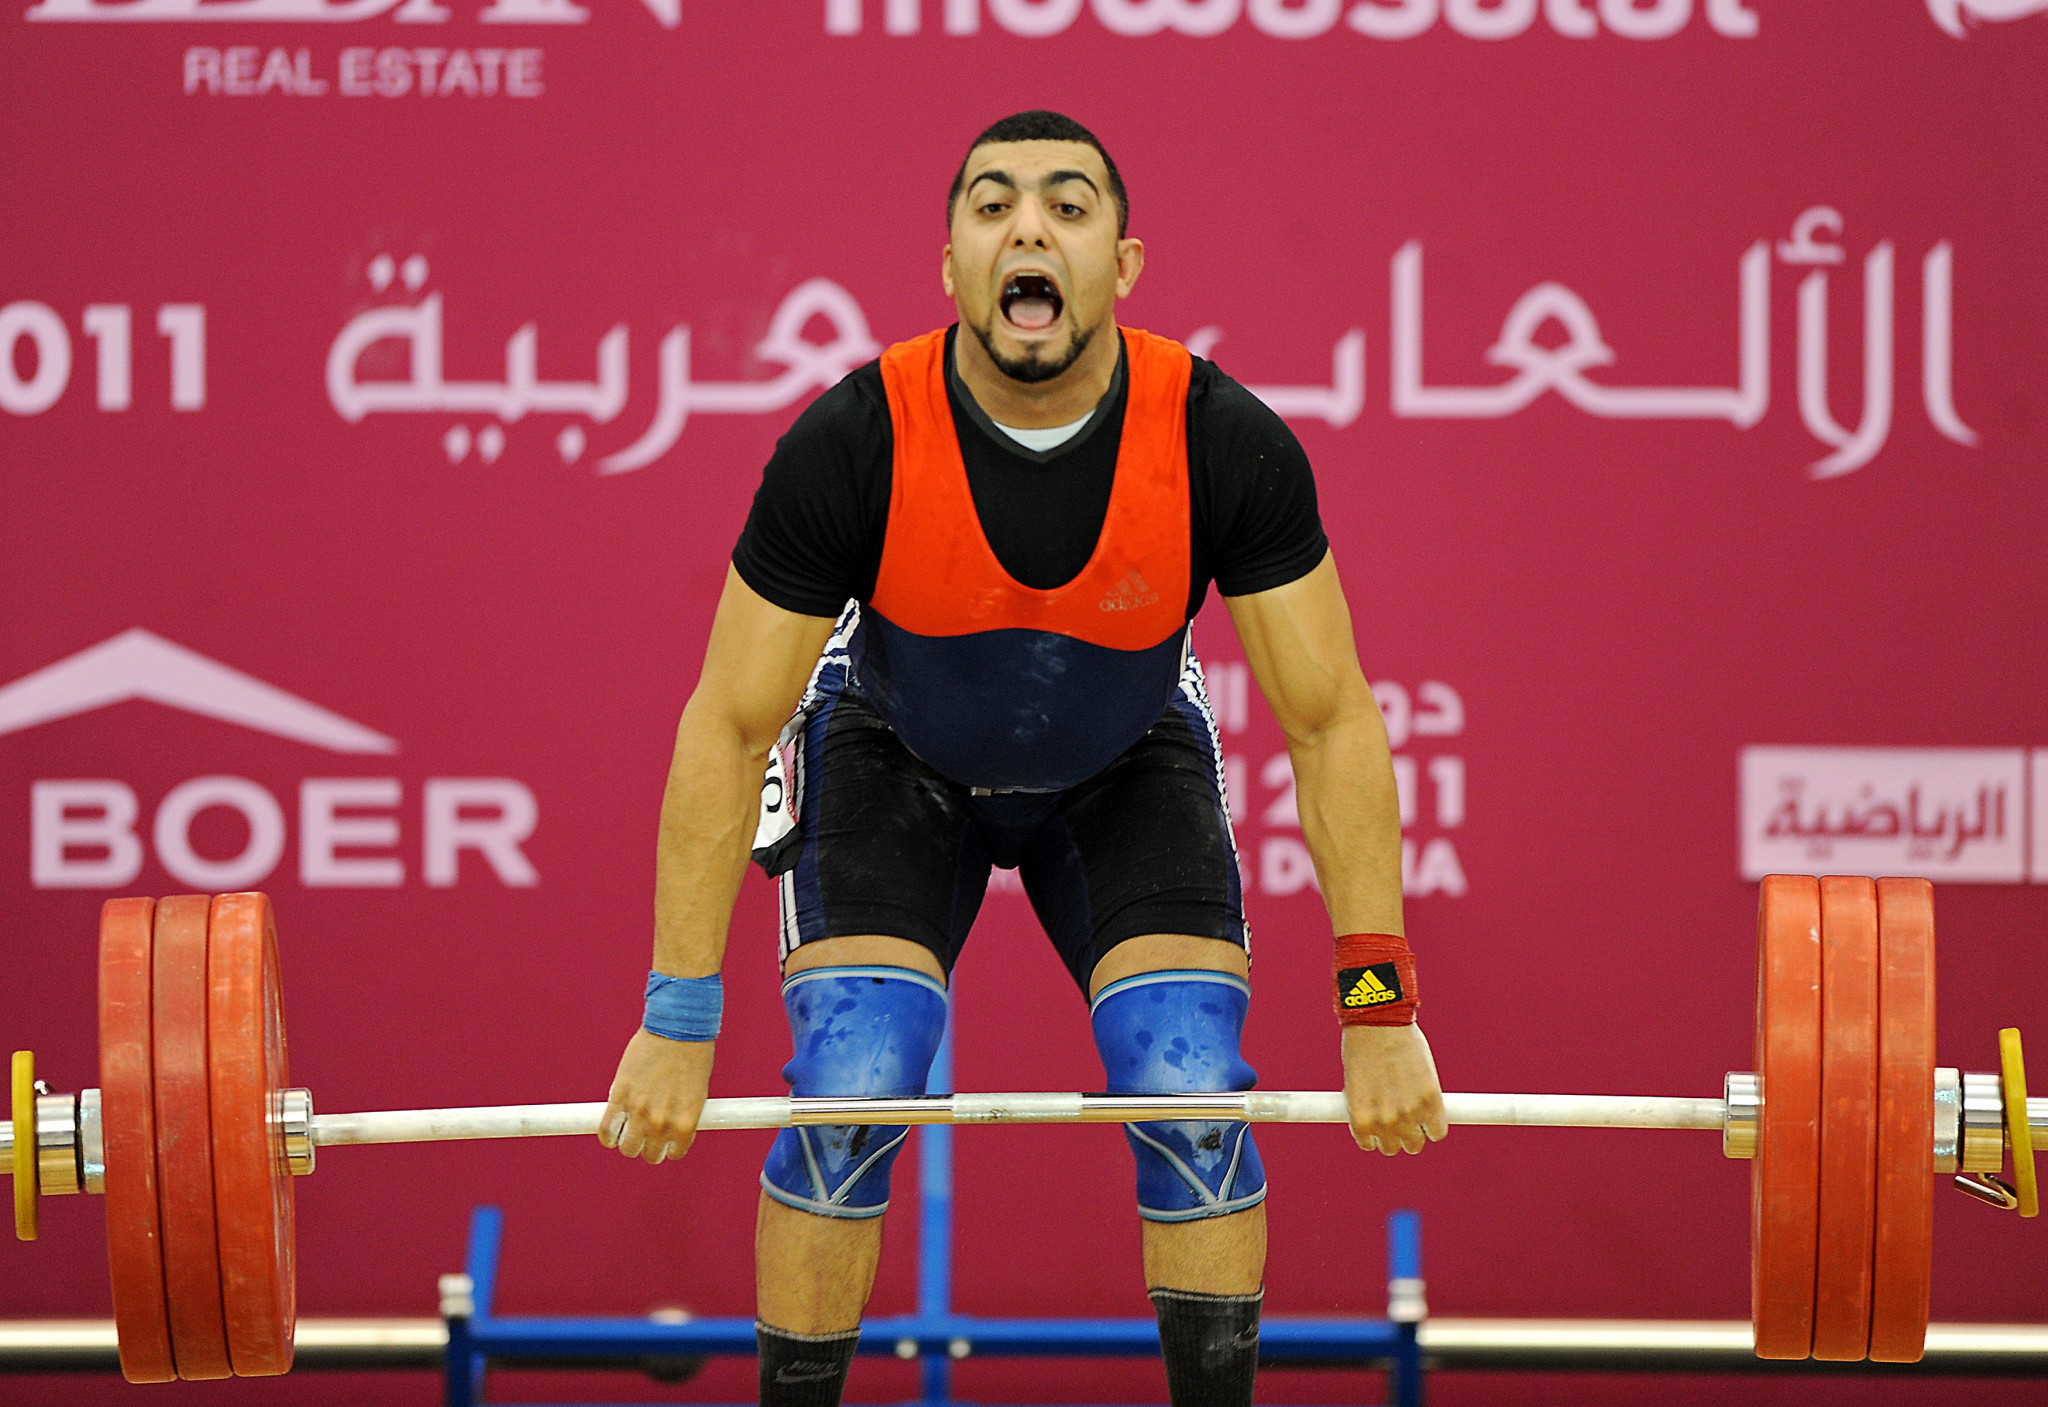 Saudi Arabian weightlifter provisionally suspended after failed drugs test